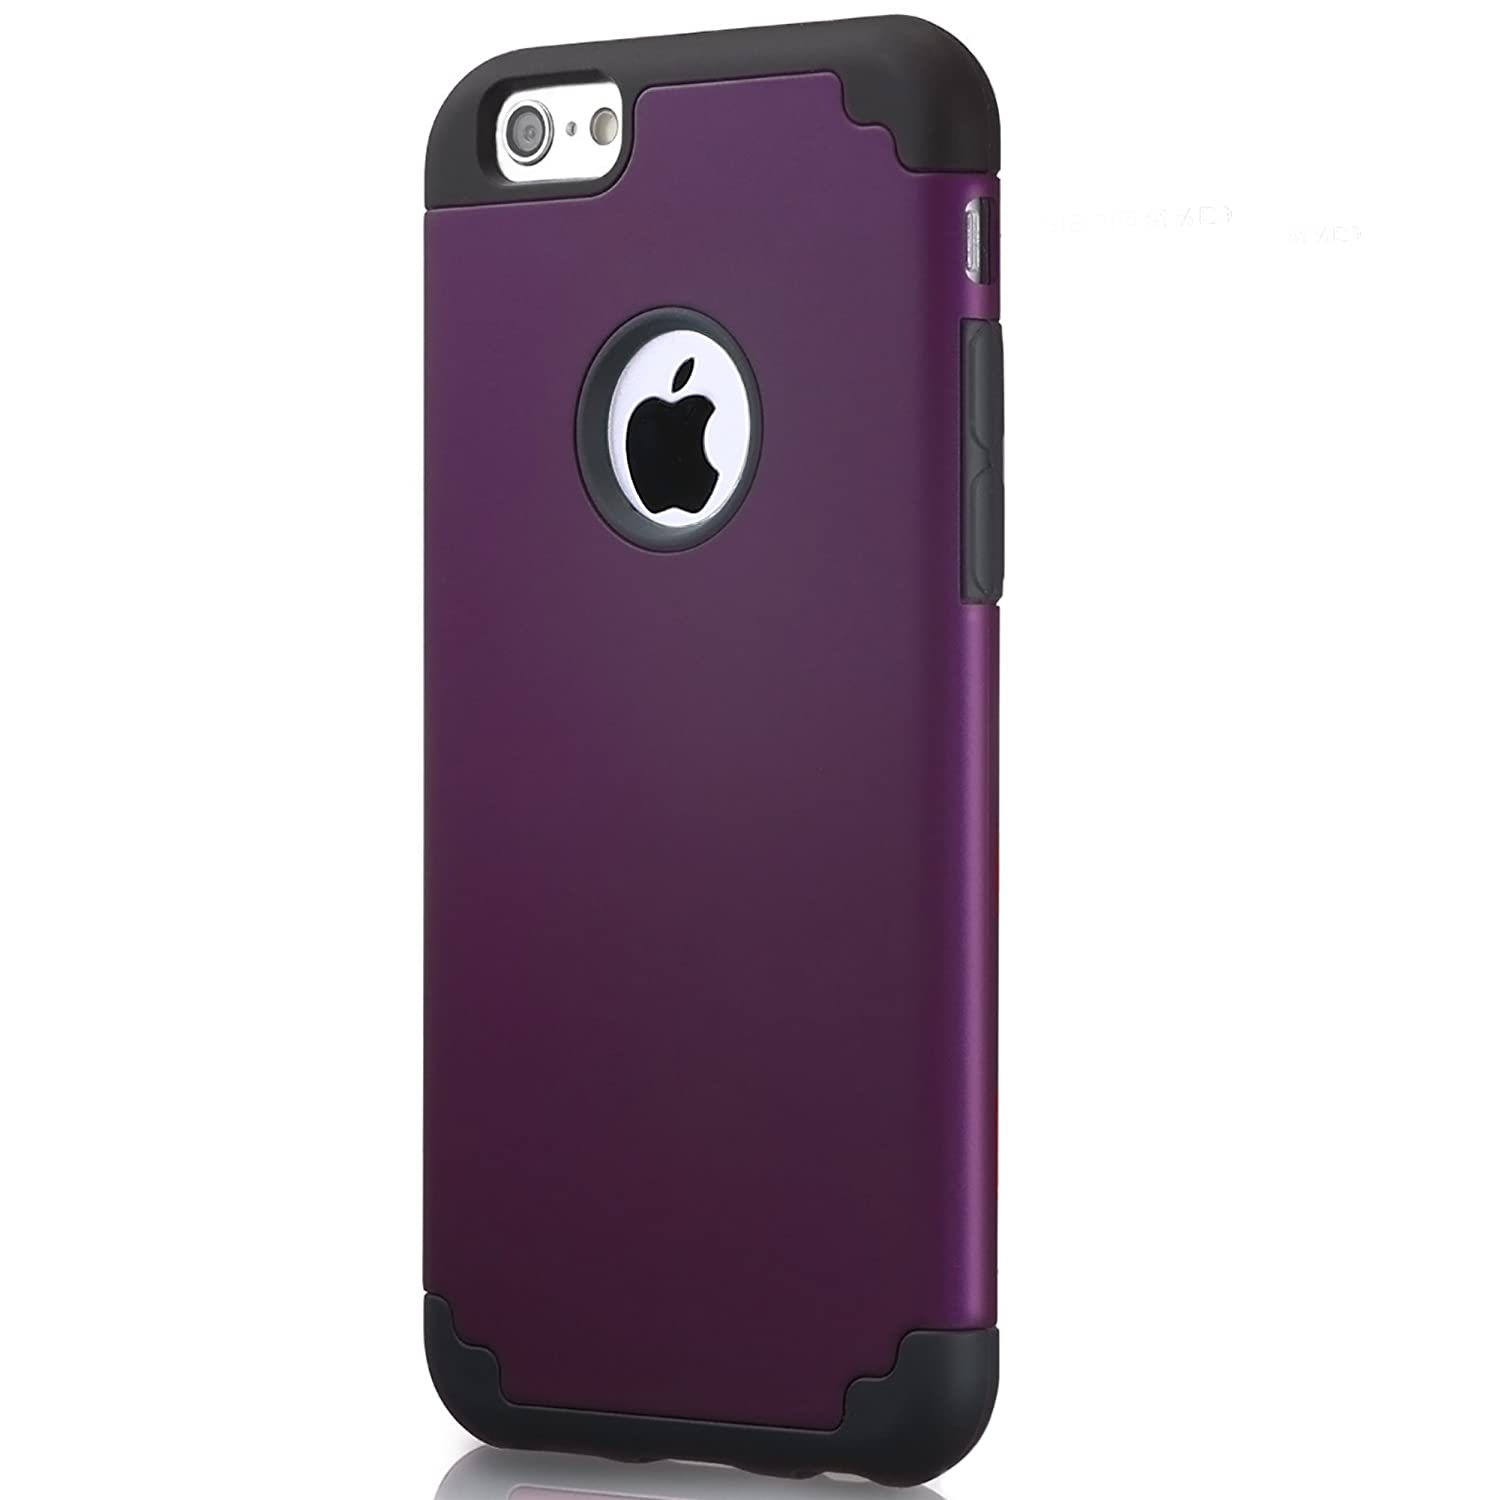 a iphone 6 case